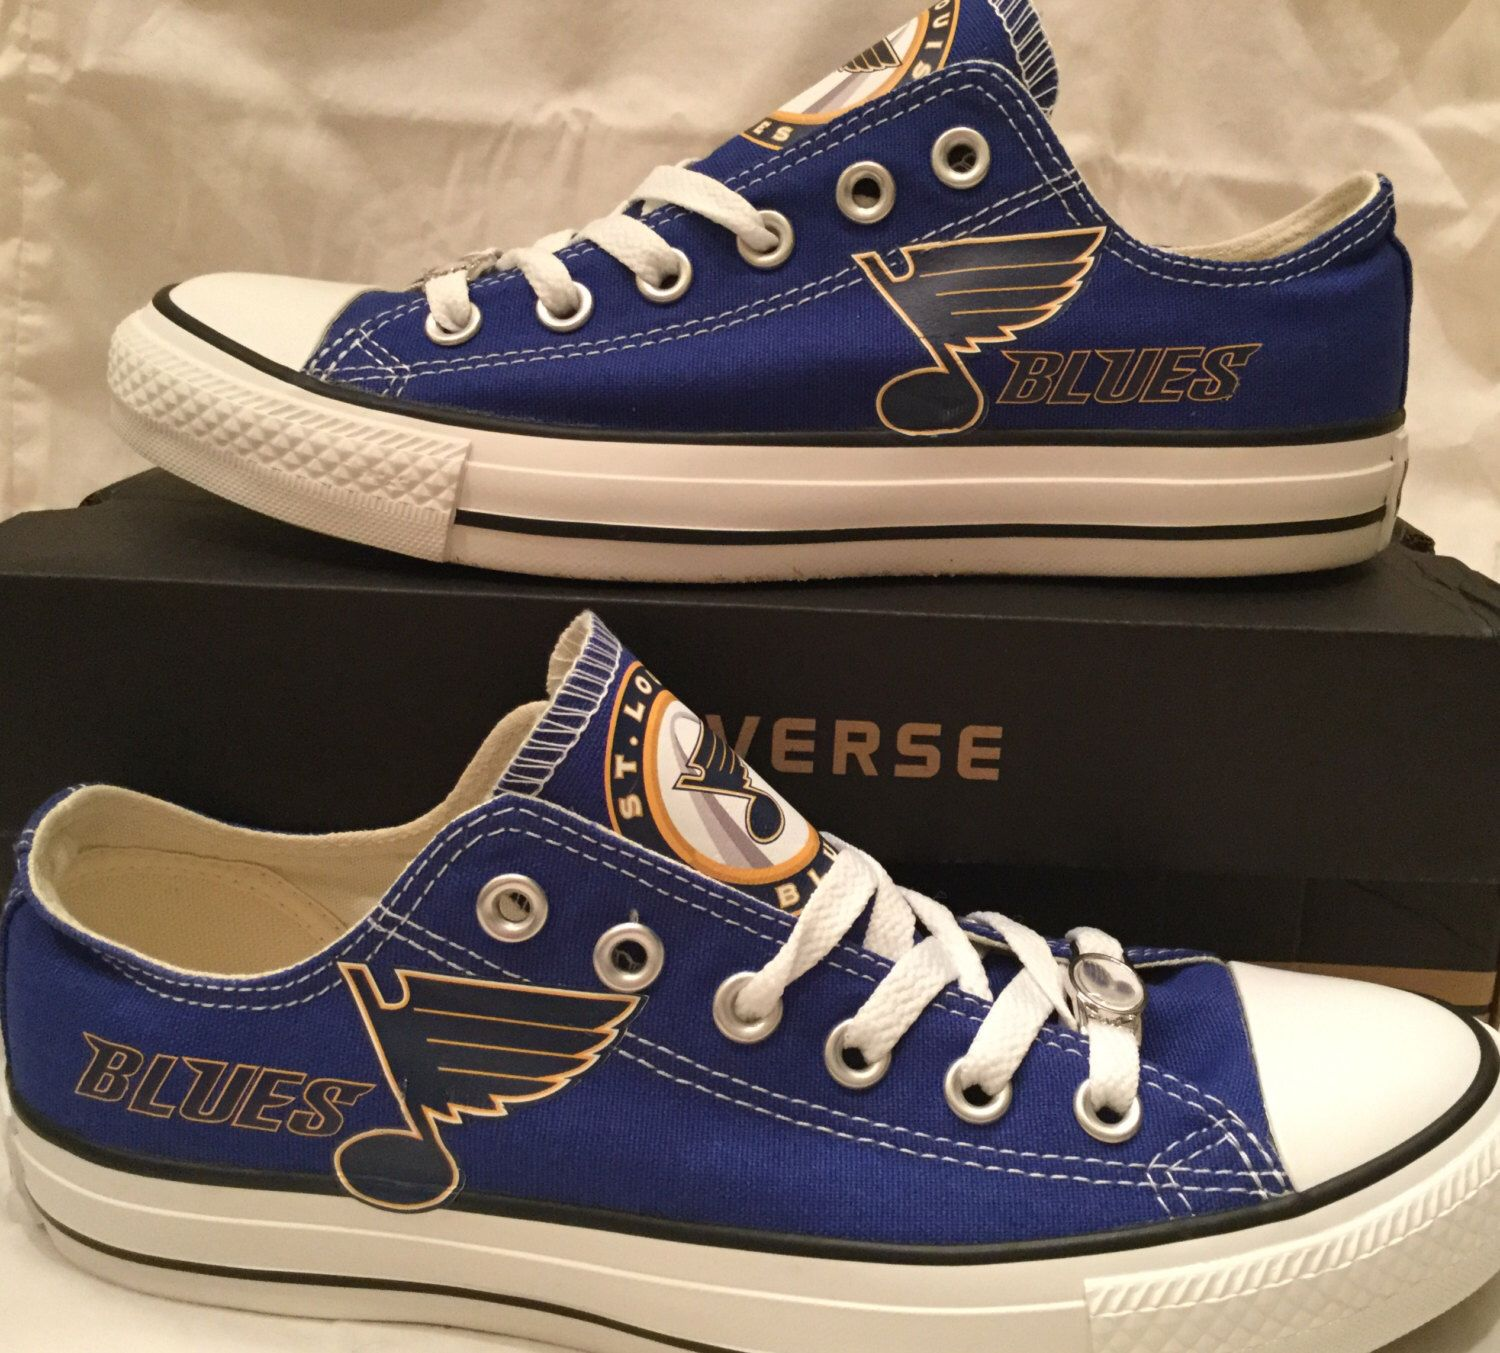 5f678e9dc36e St. Louis Blues Custom Made Converse Chuck Taylor Sneakers NHL by  PimpMyKickz on Etsy https